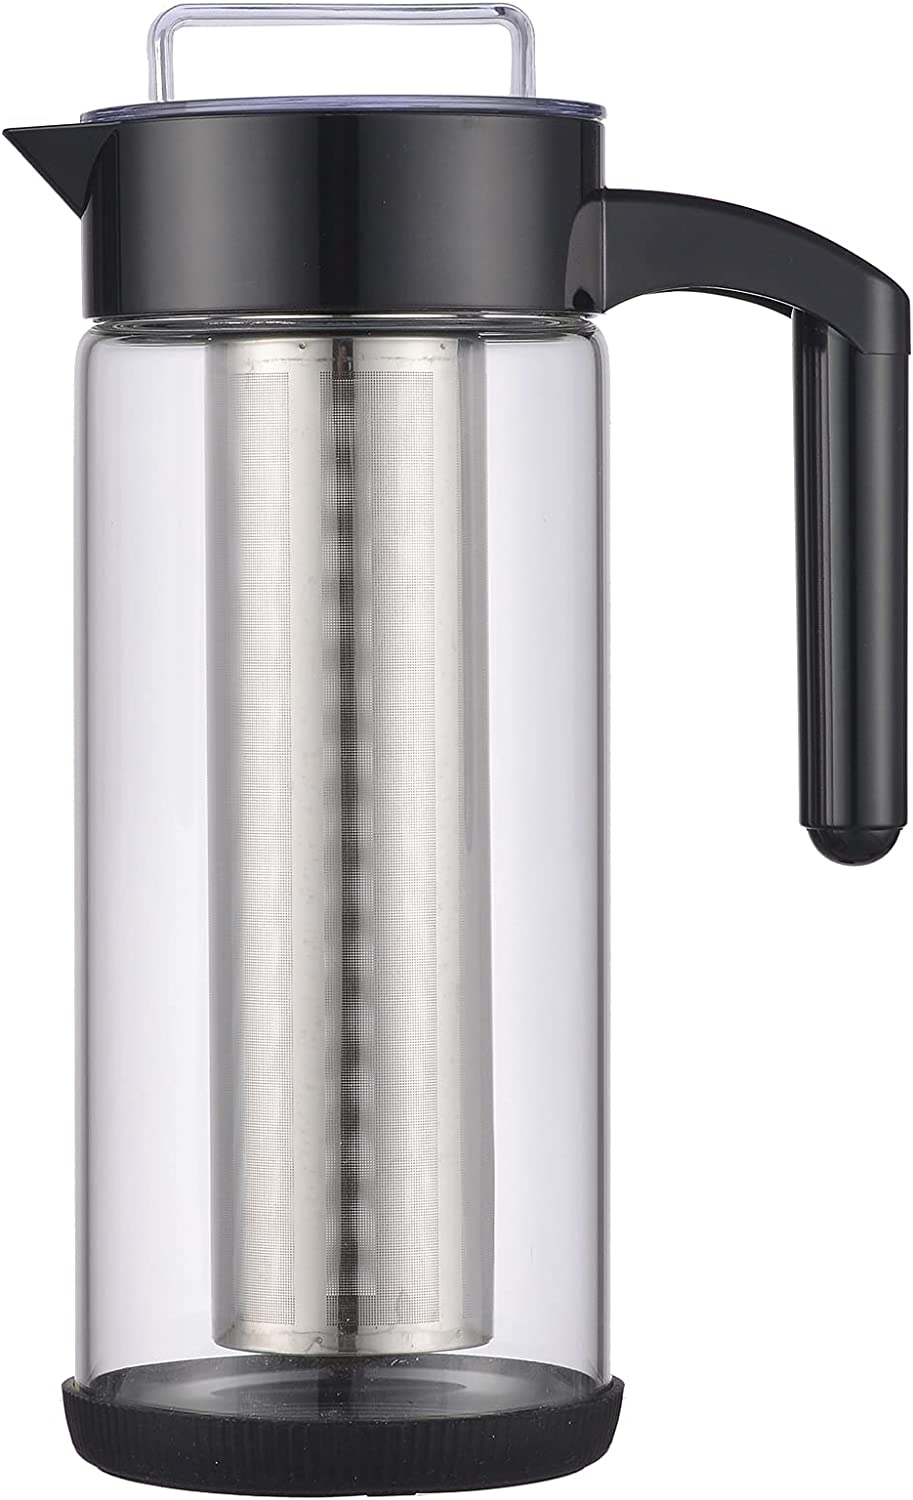 PURPLECROWN Deluxe Cold Brew Coffee Maker and Tea Brewer Cold Brew Coffee Maker with Pitcher, Filter, Reusable For Hot & Cold -1.5L